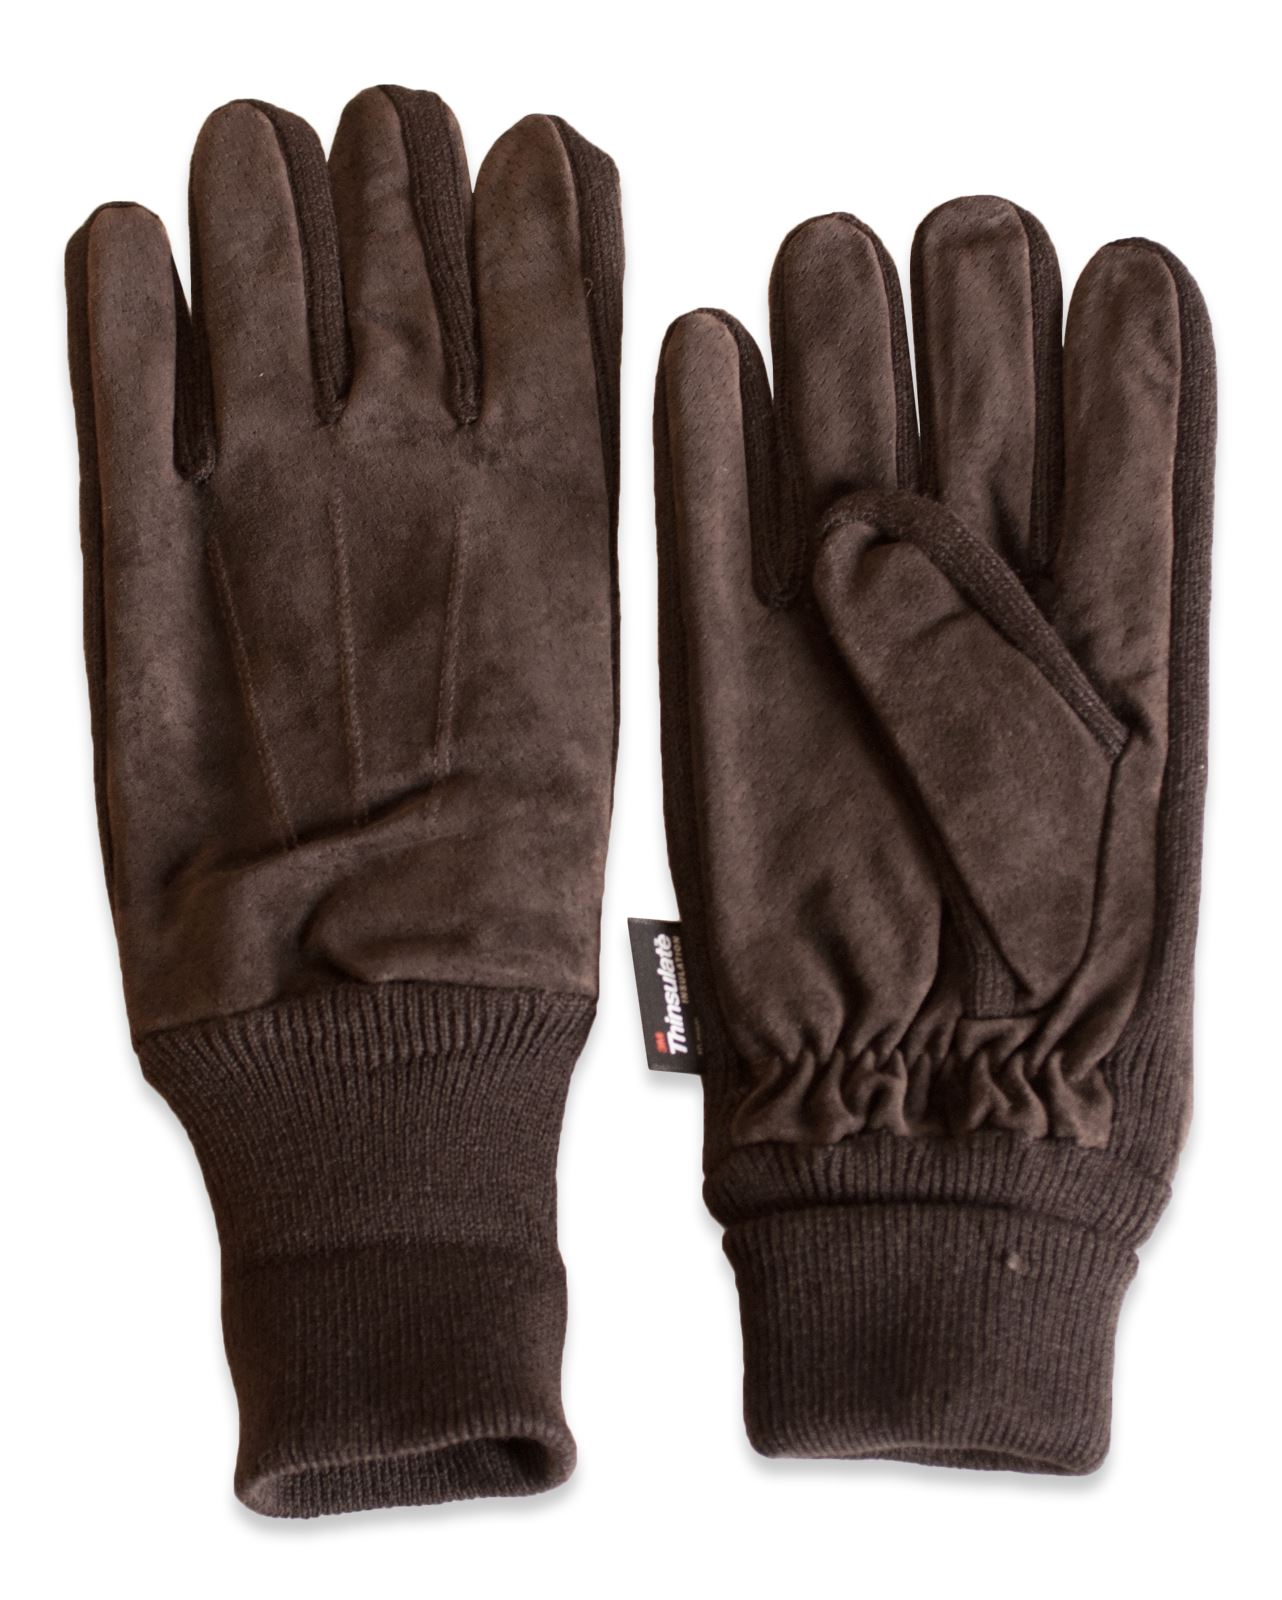 Womens leather gloves thinsulate lining - Quivano Womens Real Suede Leather Gloves Thinsulate Lined